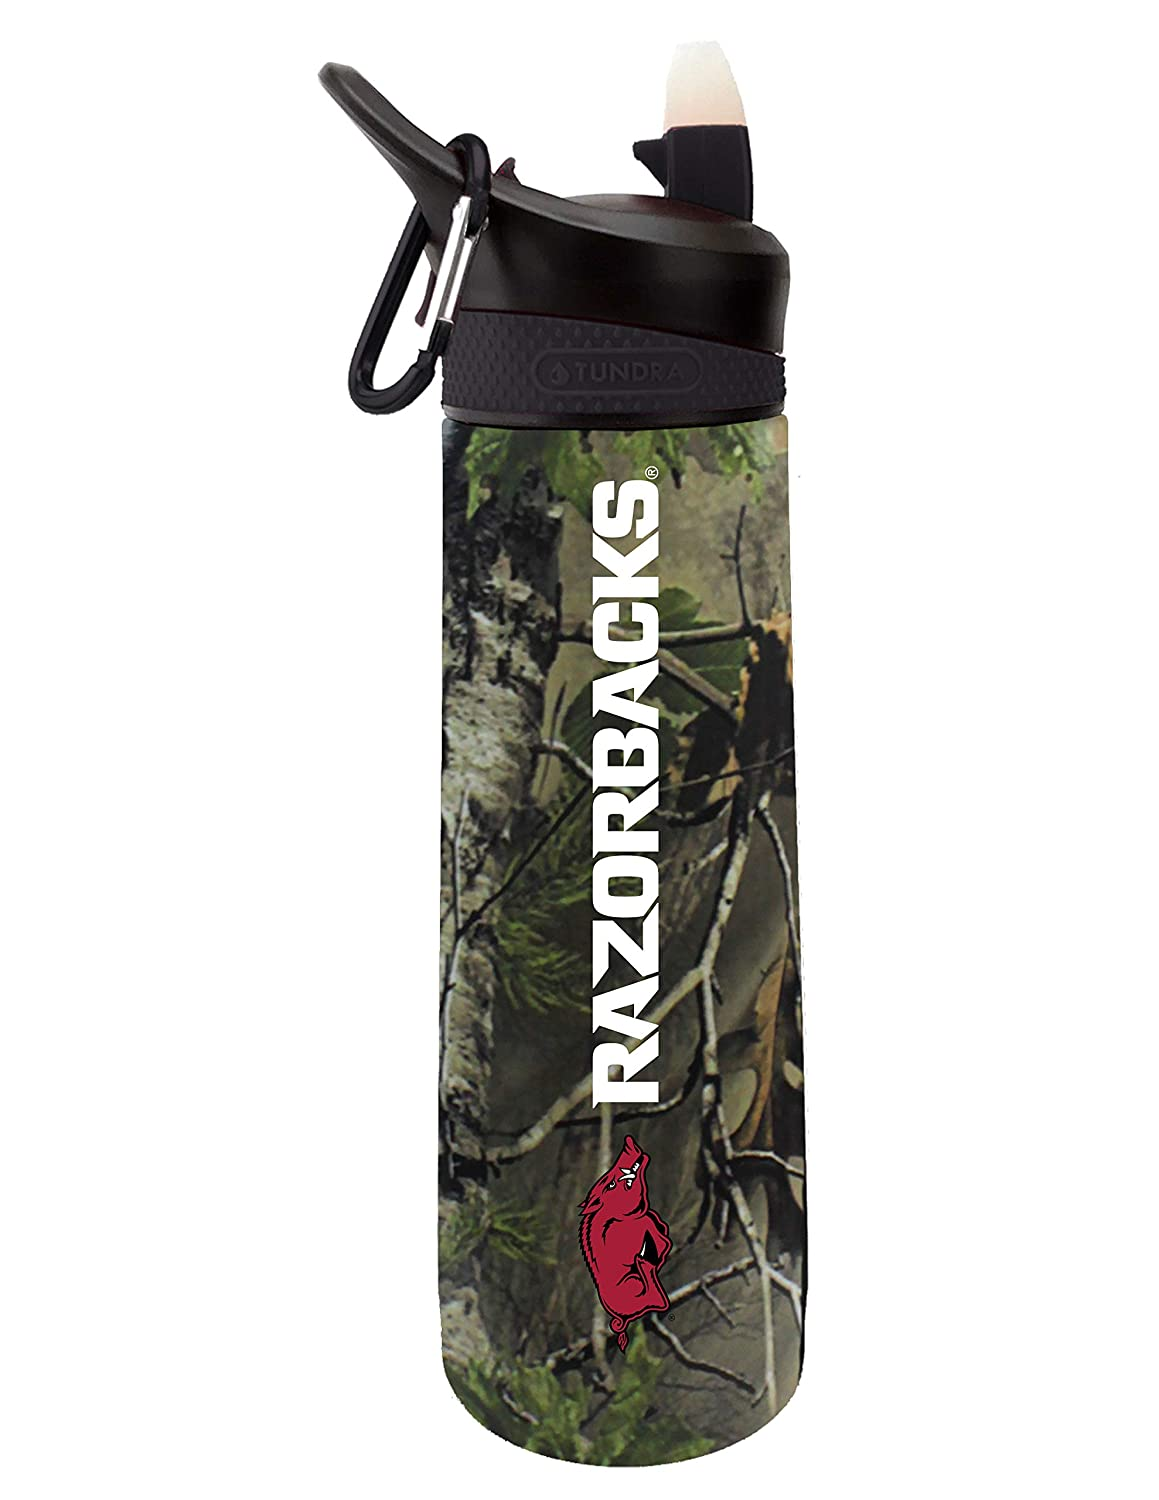 Design 2 The Fanatic Group University of Arkansas Dual Walled Stainless Steel Sports Bottle